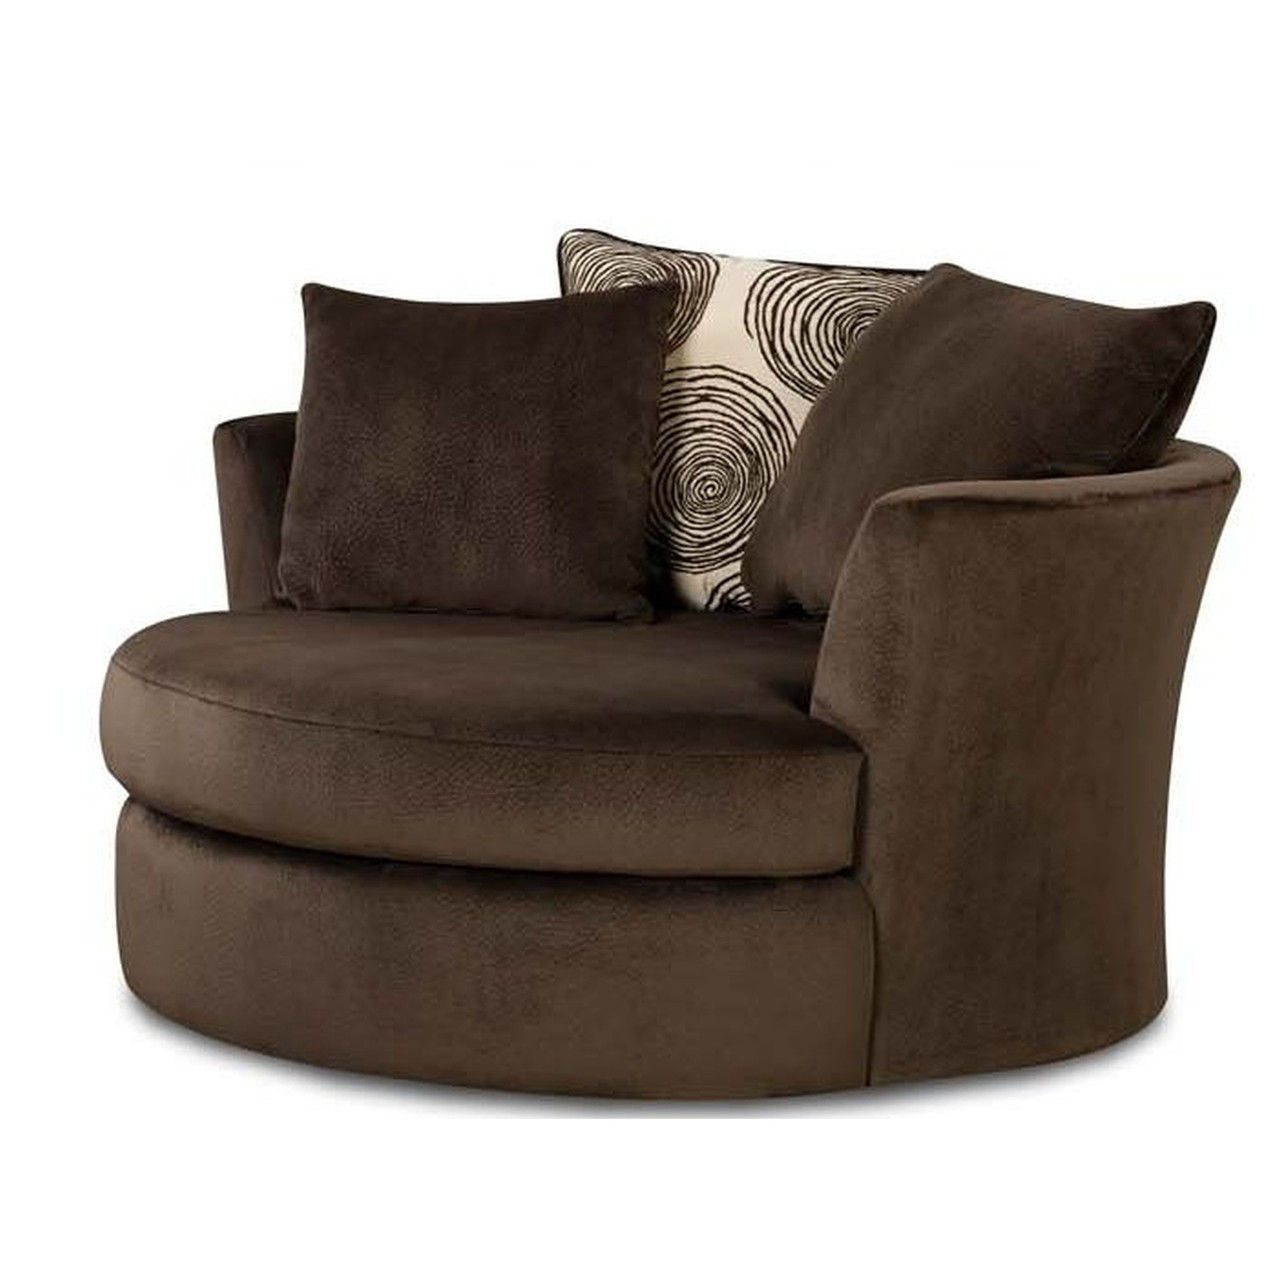 Beau Shop For 1009 Walt Swivel Chair, Walt Chair, And Other Living Room Chairs  At Colfax Furniture And Mattress In Greensboro, Winston Salem And  Kernersville, ...